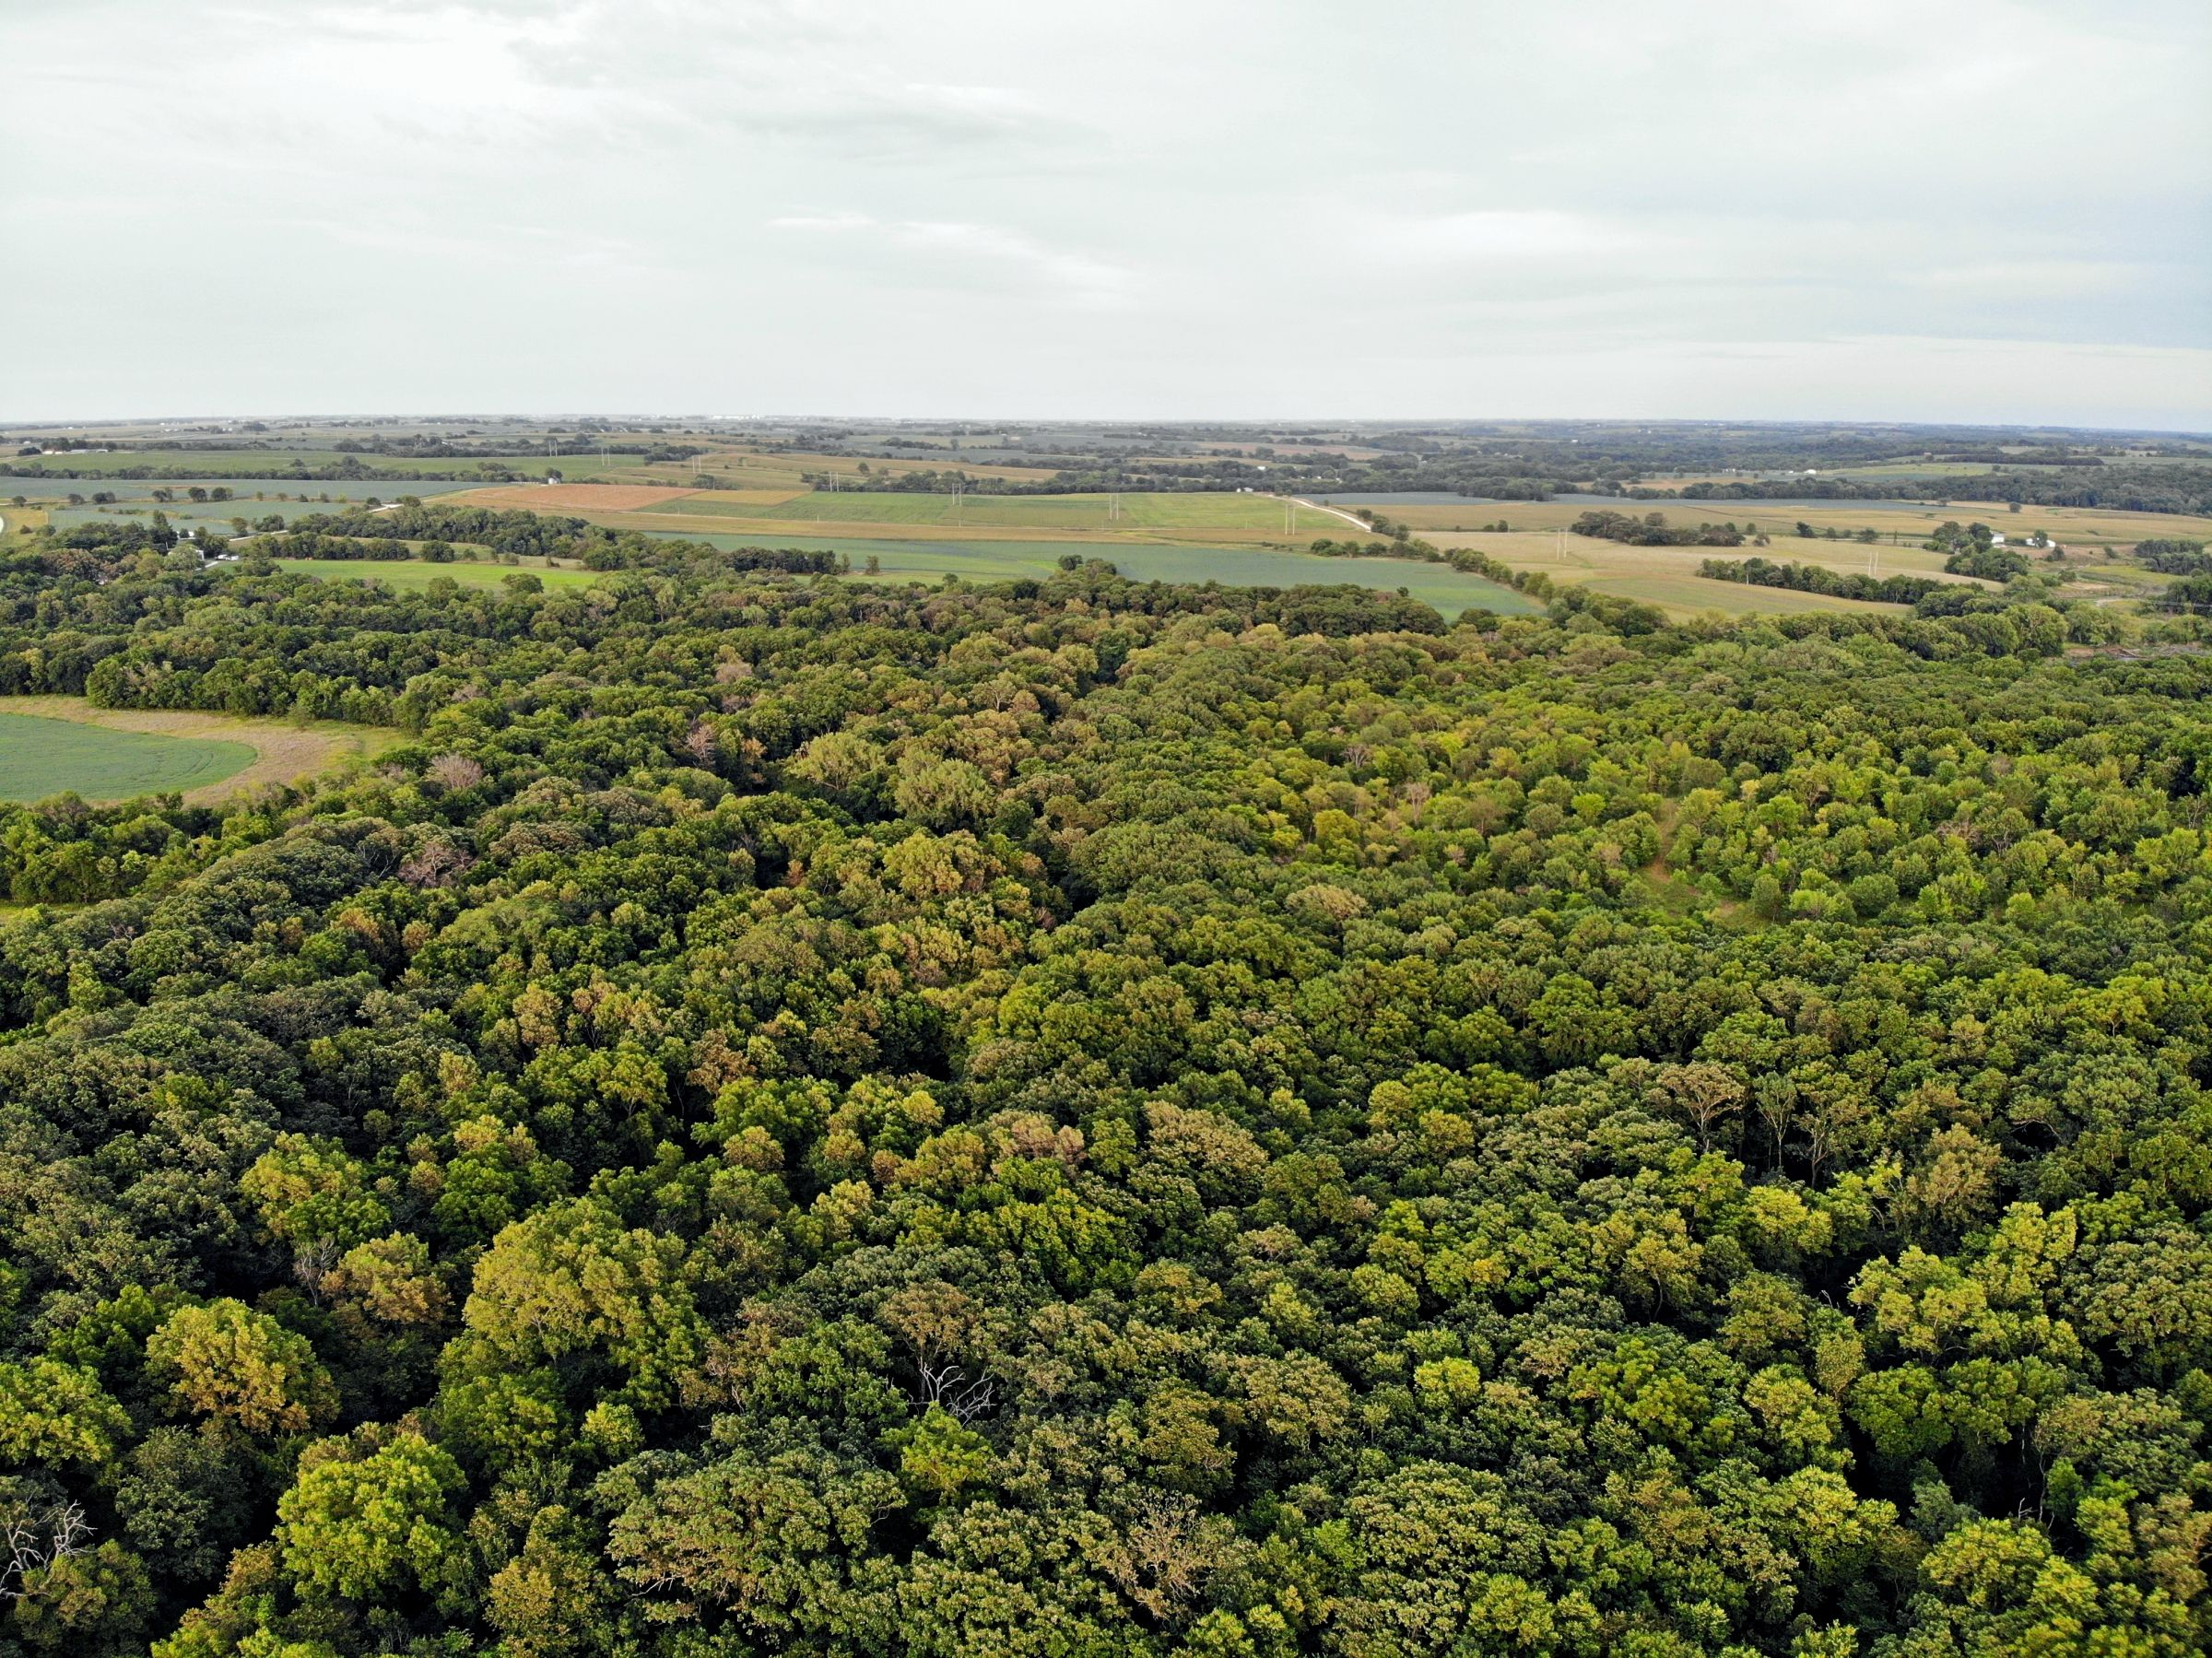 residential-land-madison-county-iowa-106-acres-listing-number-15123-5-2020-08-24-023319.JPG